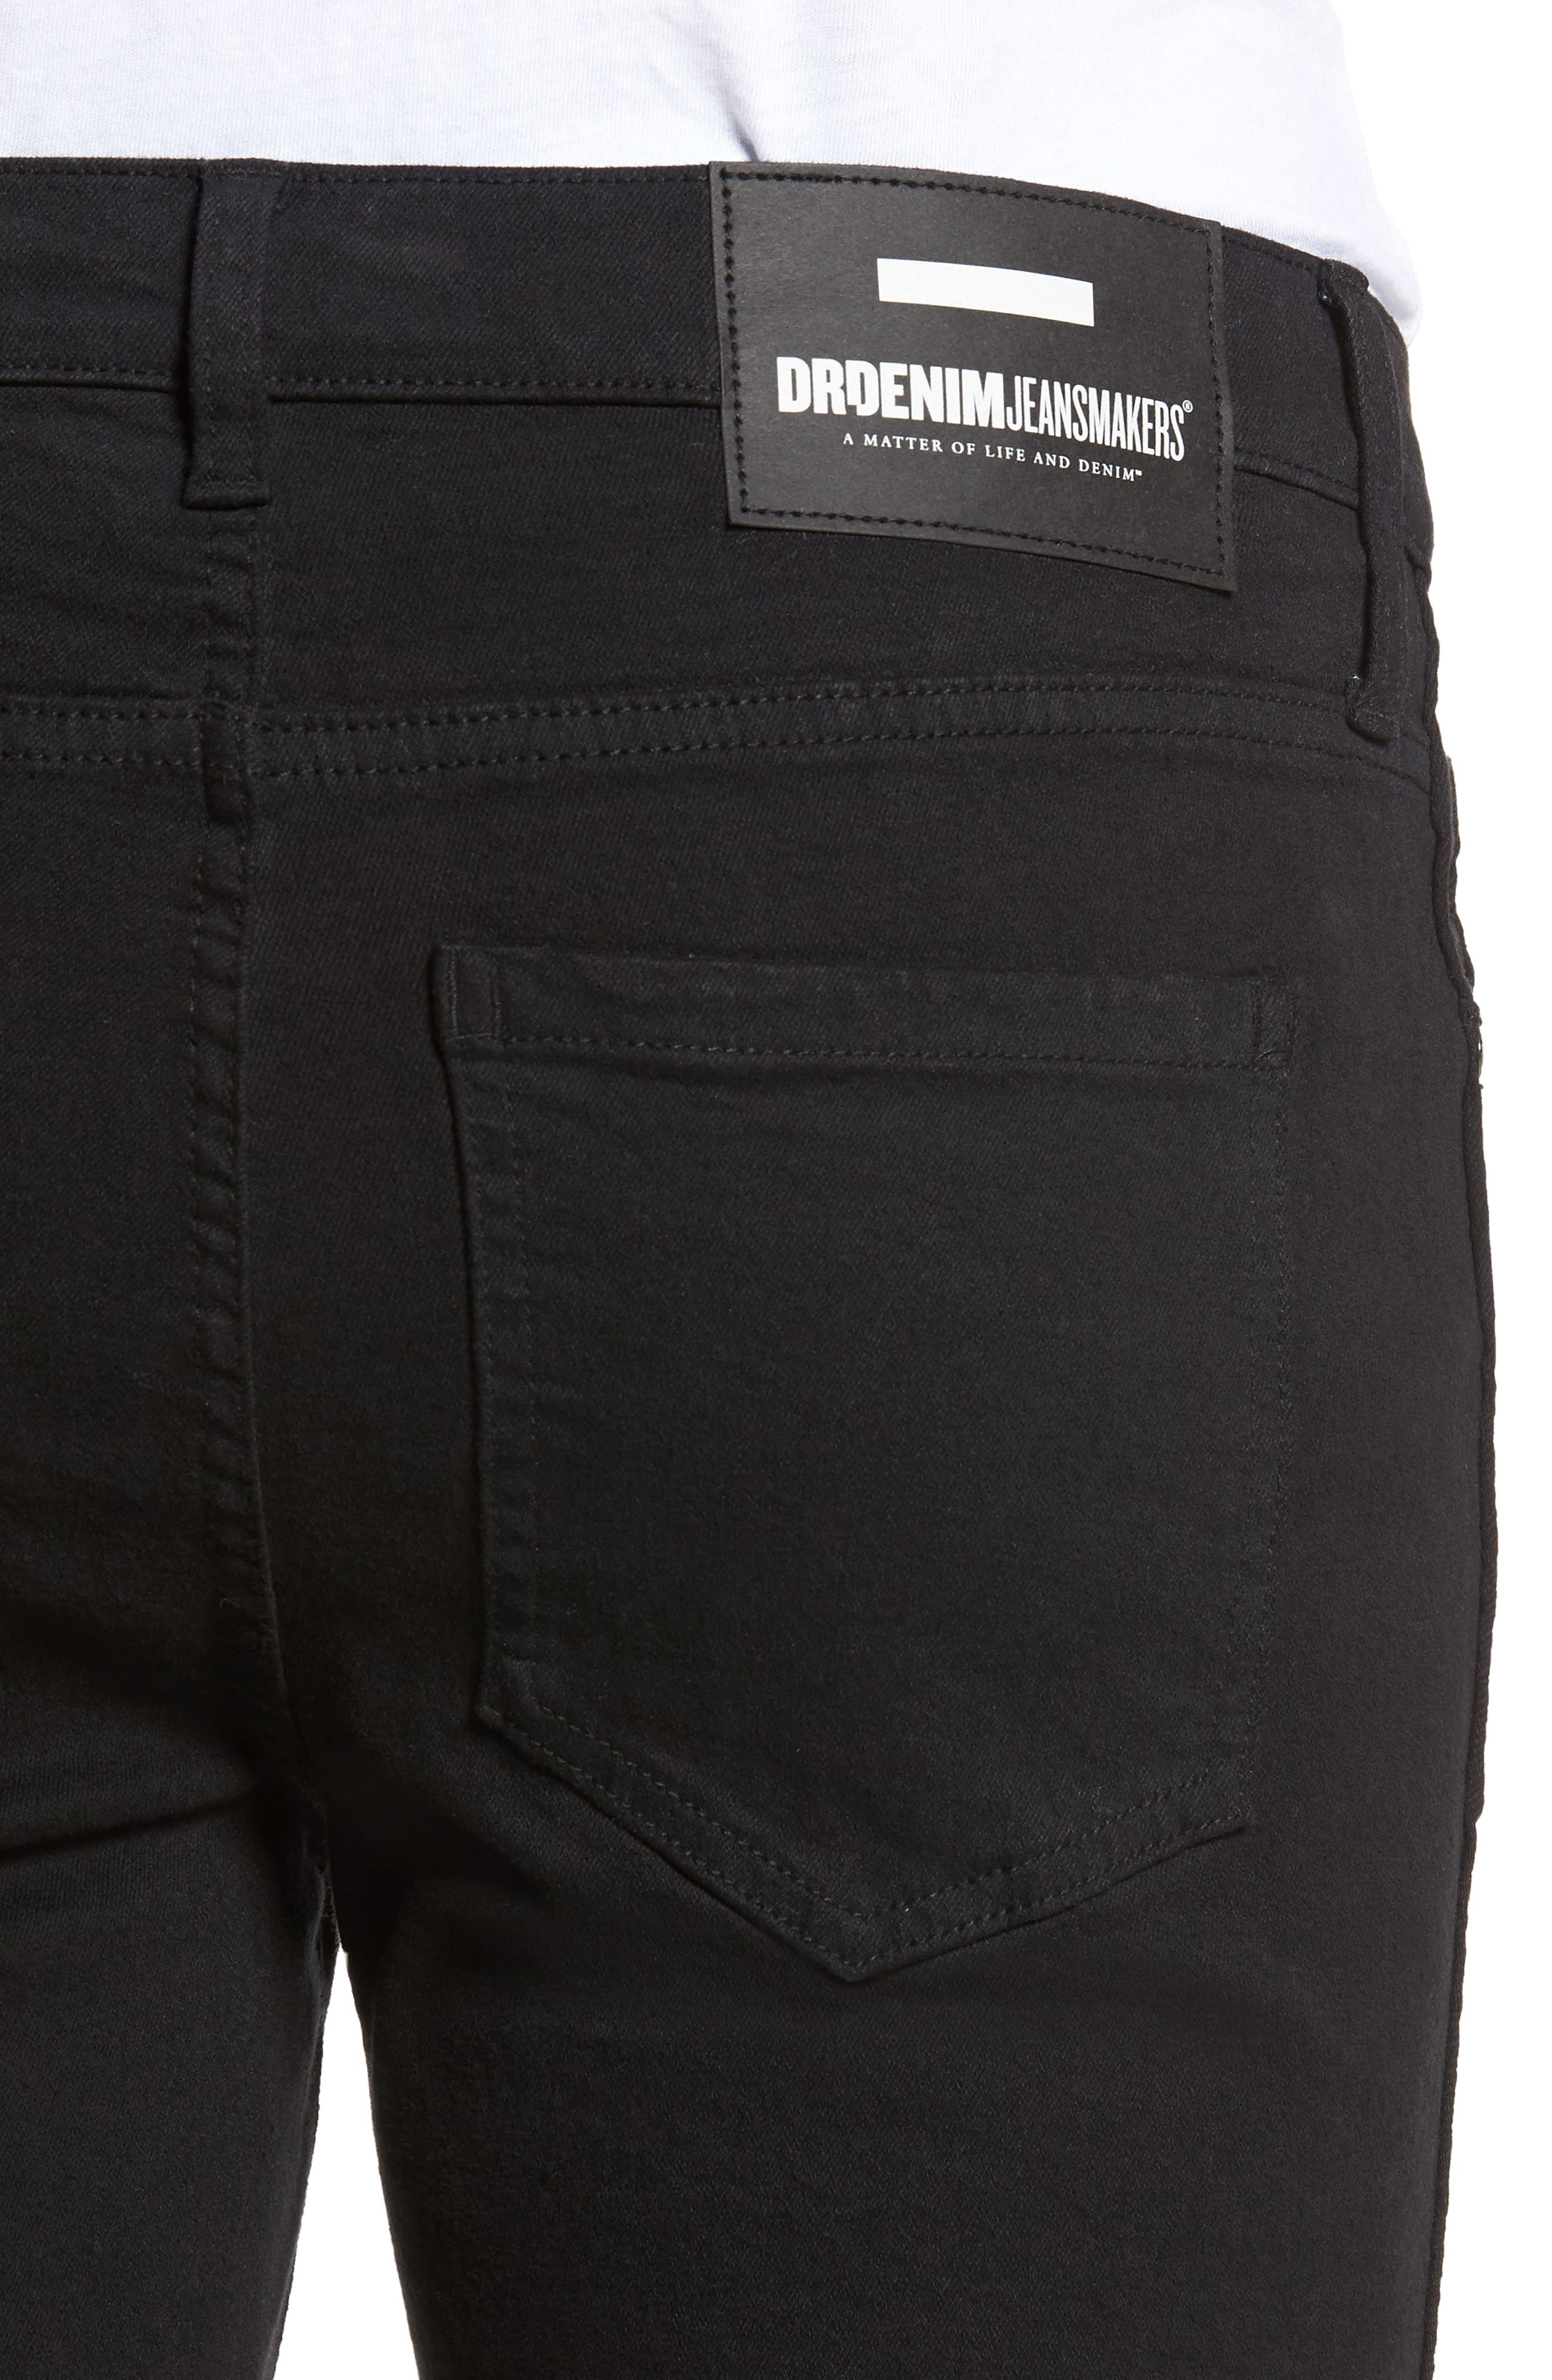 Snap Skinny Fit Jeans,                             Alternate thumbnail 4, color,                             BLACK